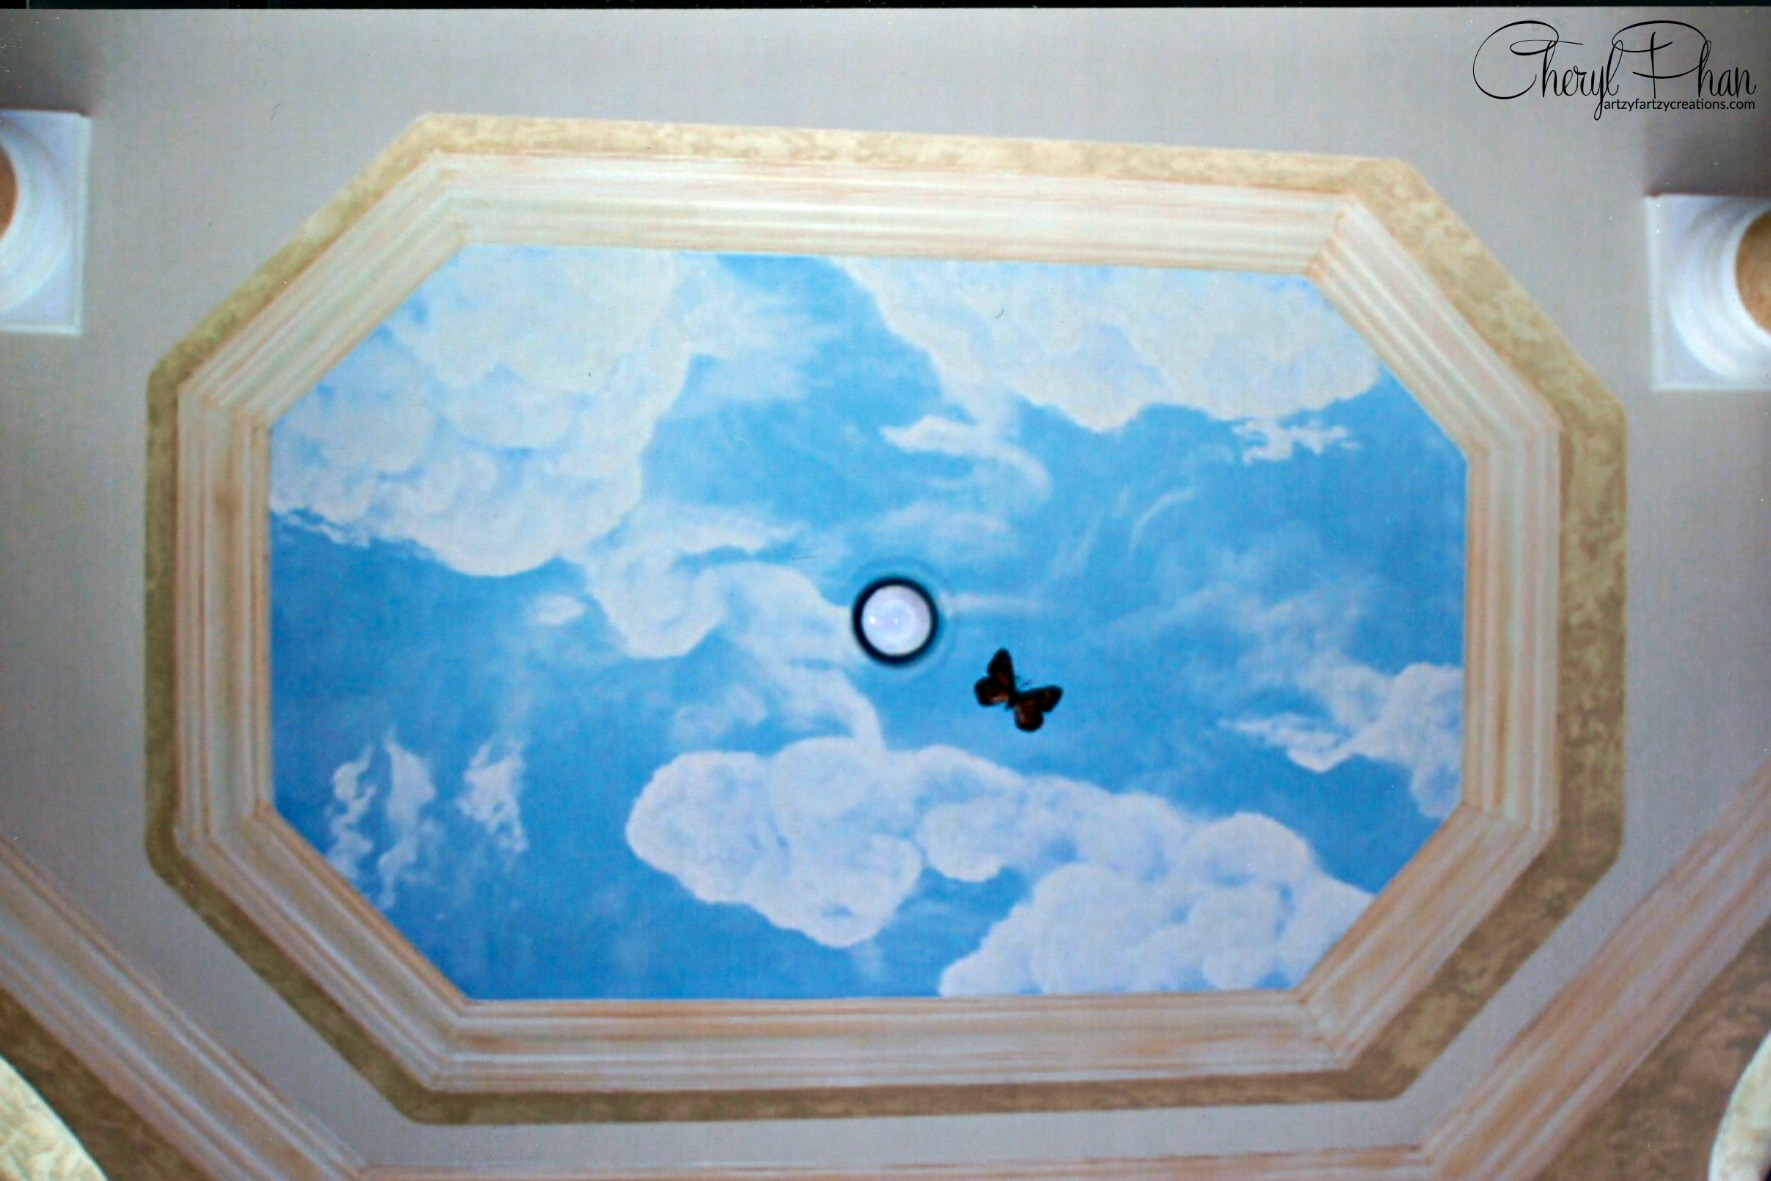 Painted Clouds on Ceilings & Walls | Cheryl Phan